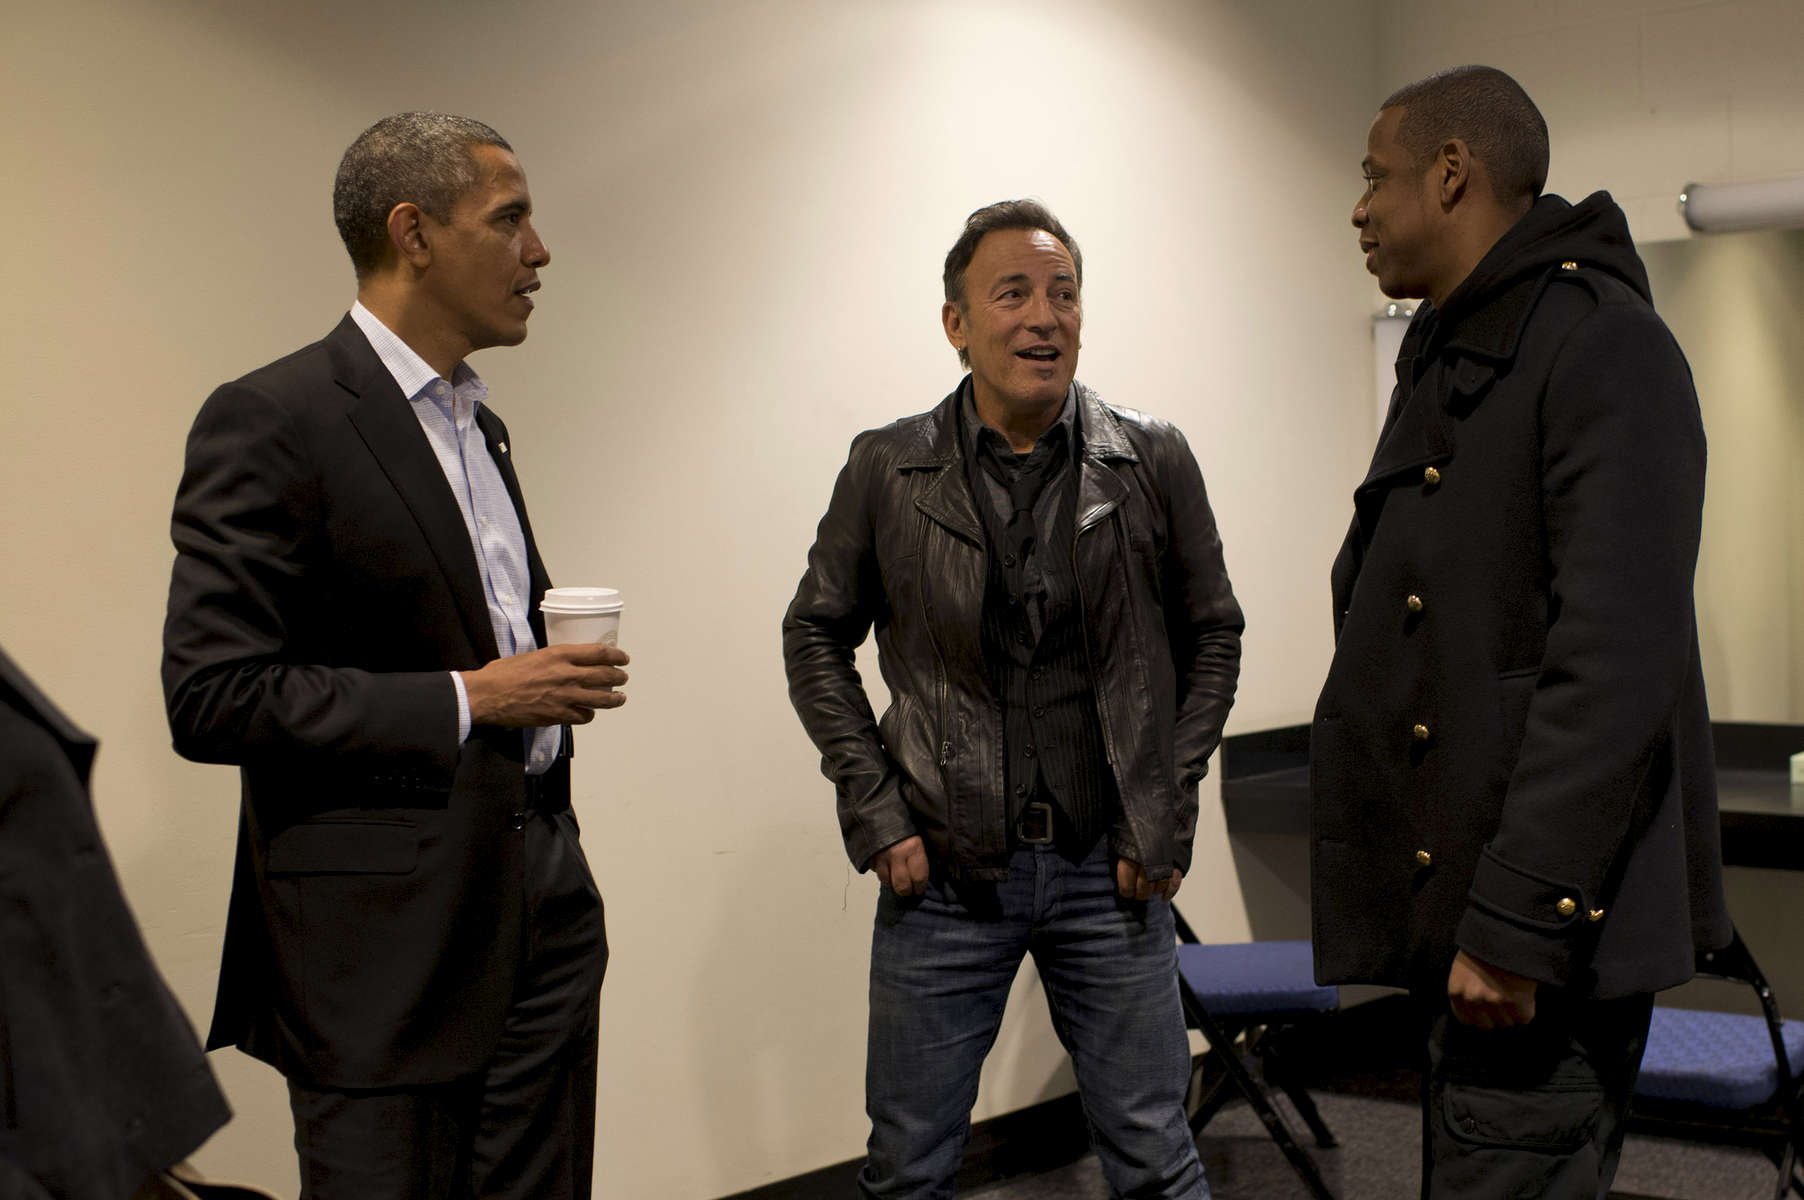 November 5, 2012  - Columbus, OH: President Barack Obama chats backstage with rock star Bruce Springsteen and rapper Jay-Z before a rally in Columbus, OH the day before the 2012 election.  (Scout Tufankjian for Obama for America/Polaris)